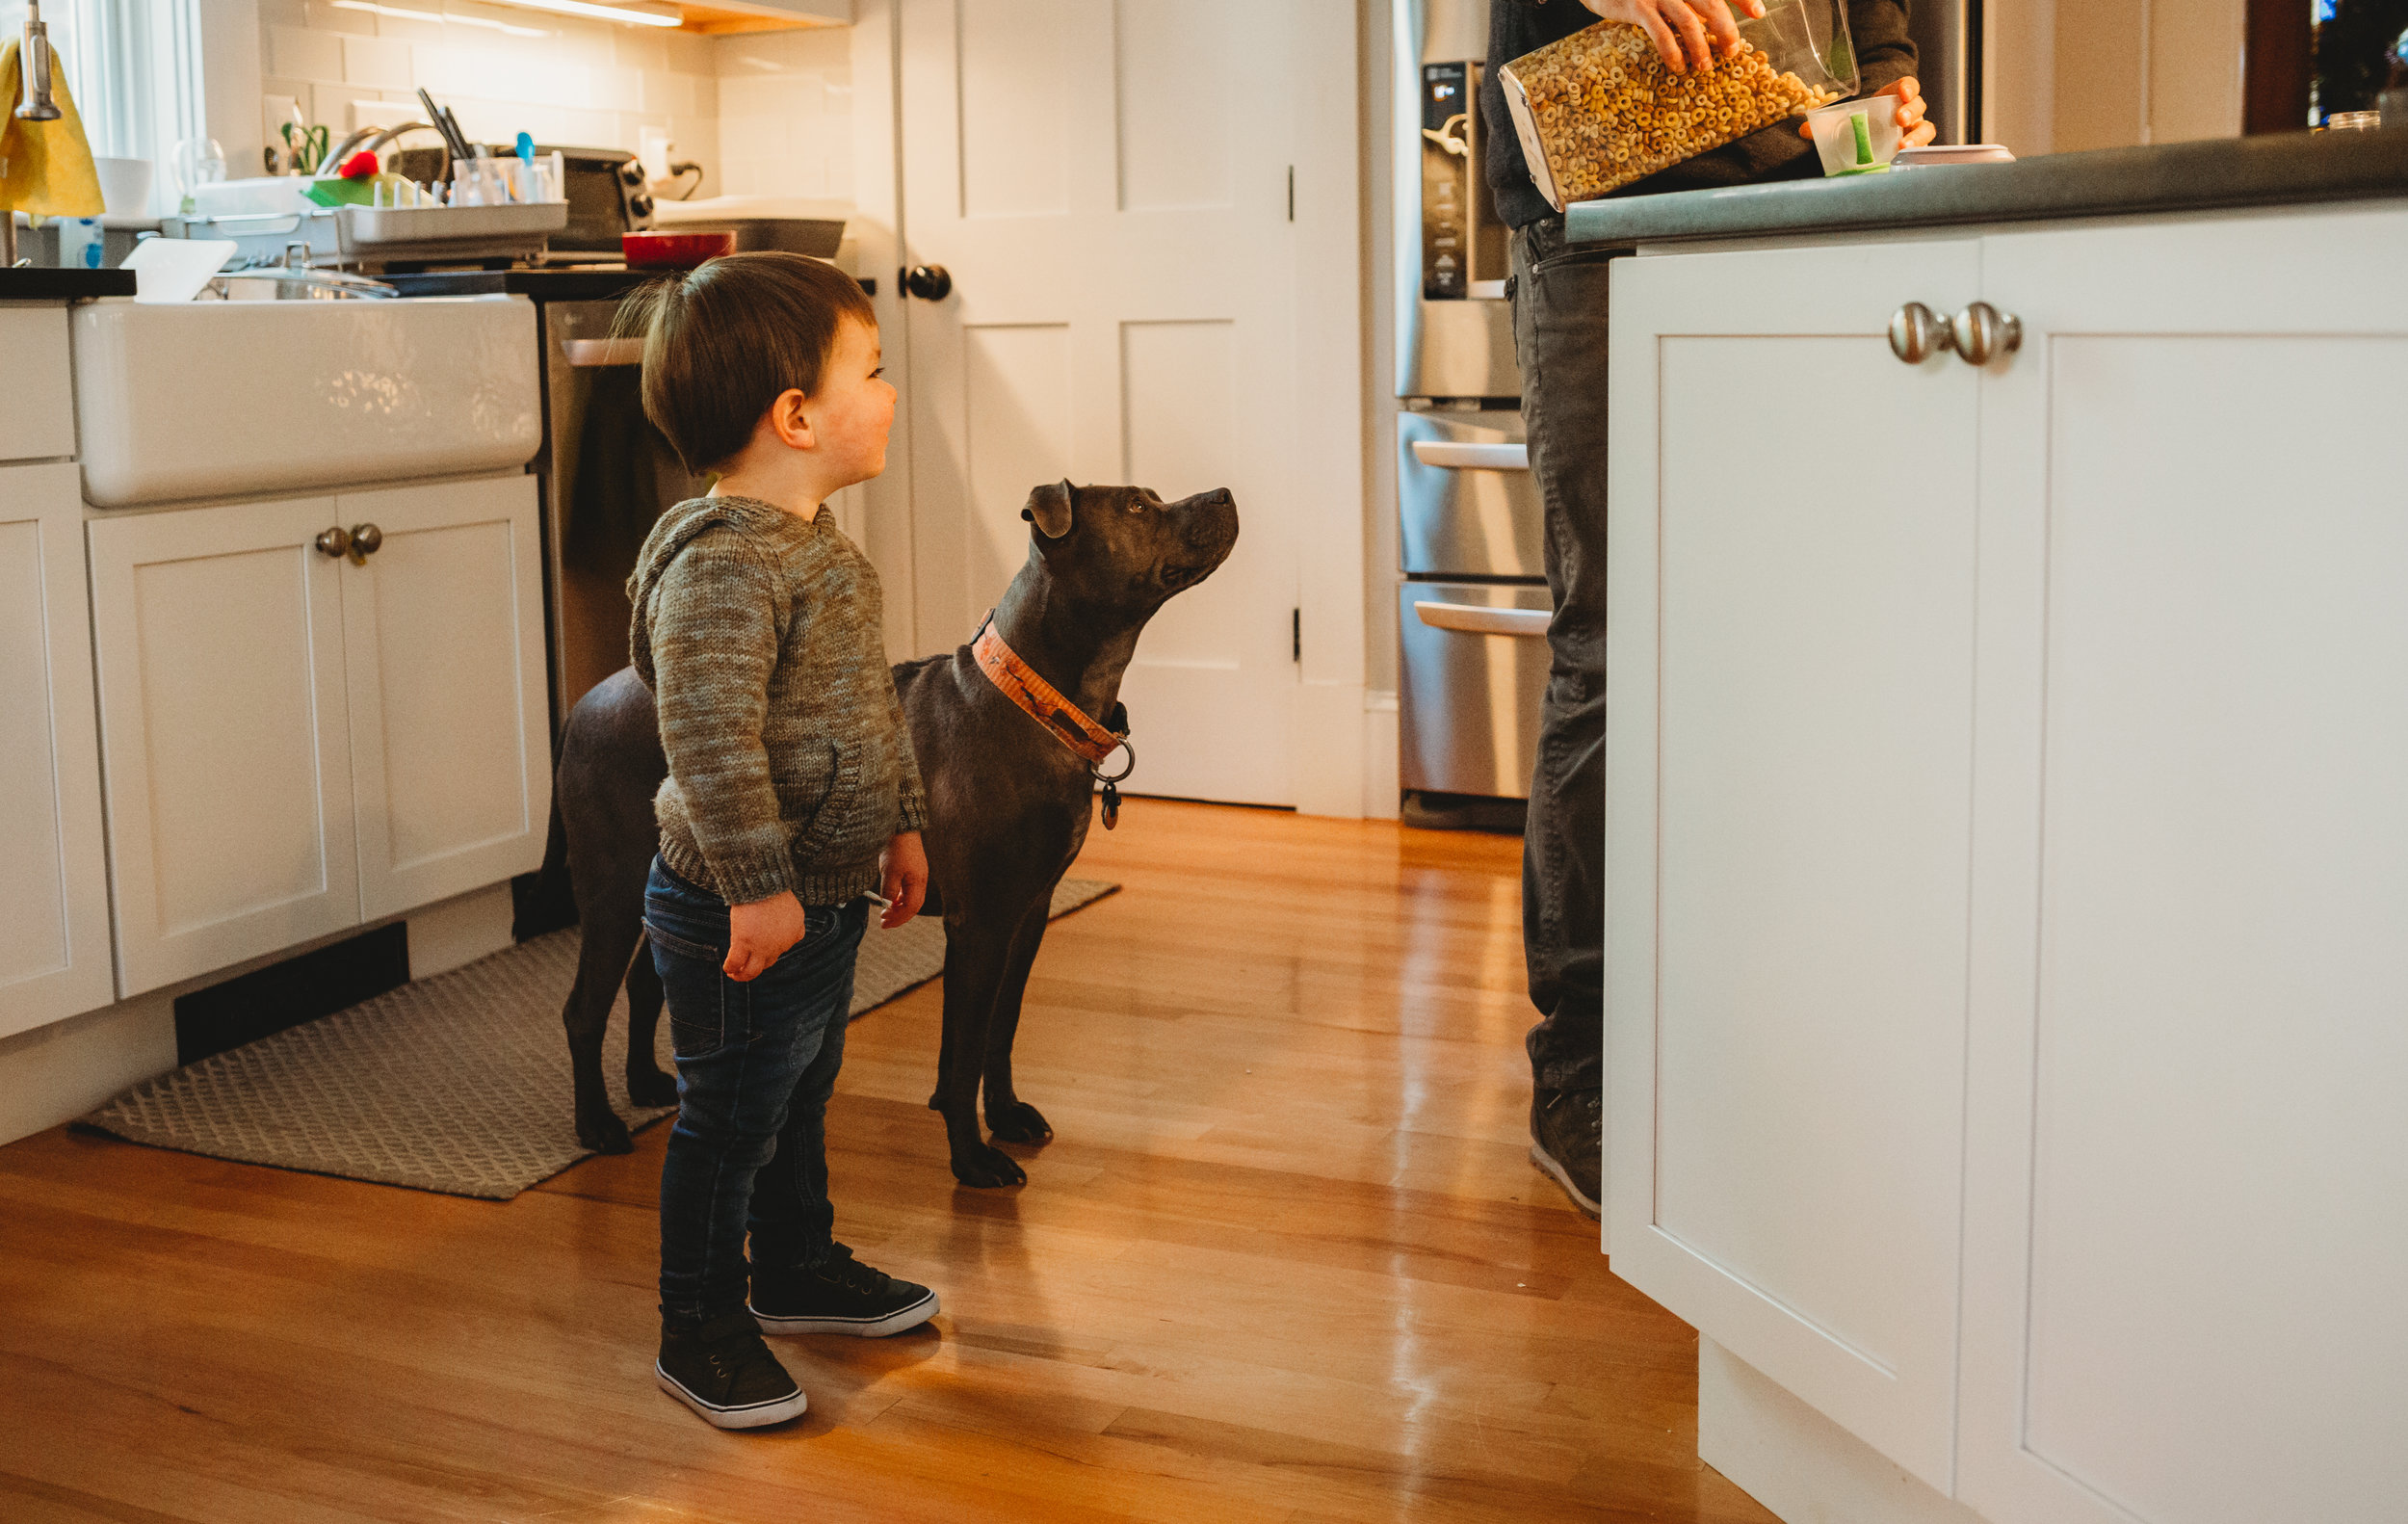 Toddler boy and family dog grabbing a snack during their in-home session in Melrose. Boston family photographer Joy LeDuc. At-home lifestyle photographs.